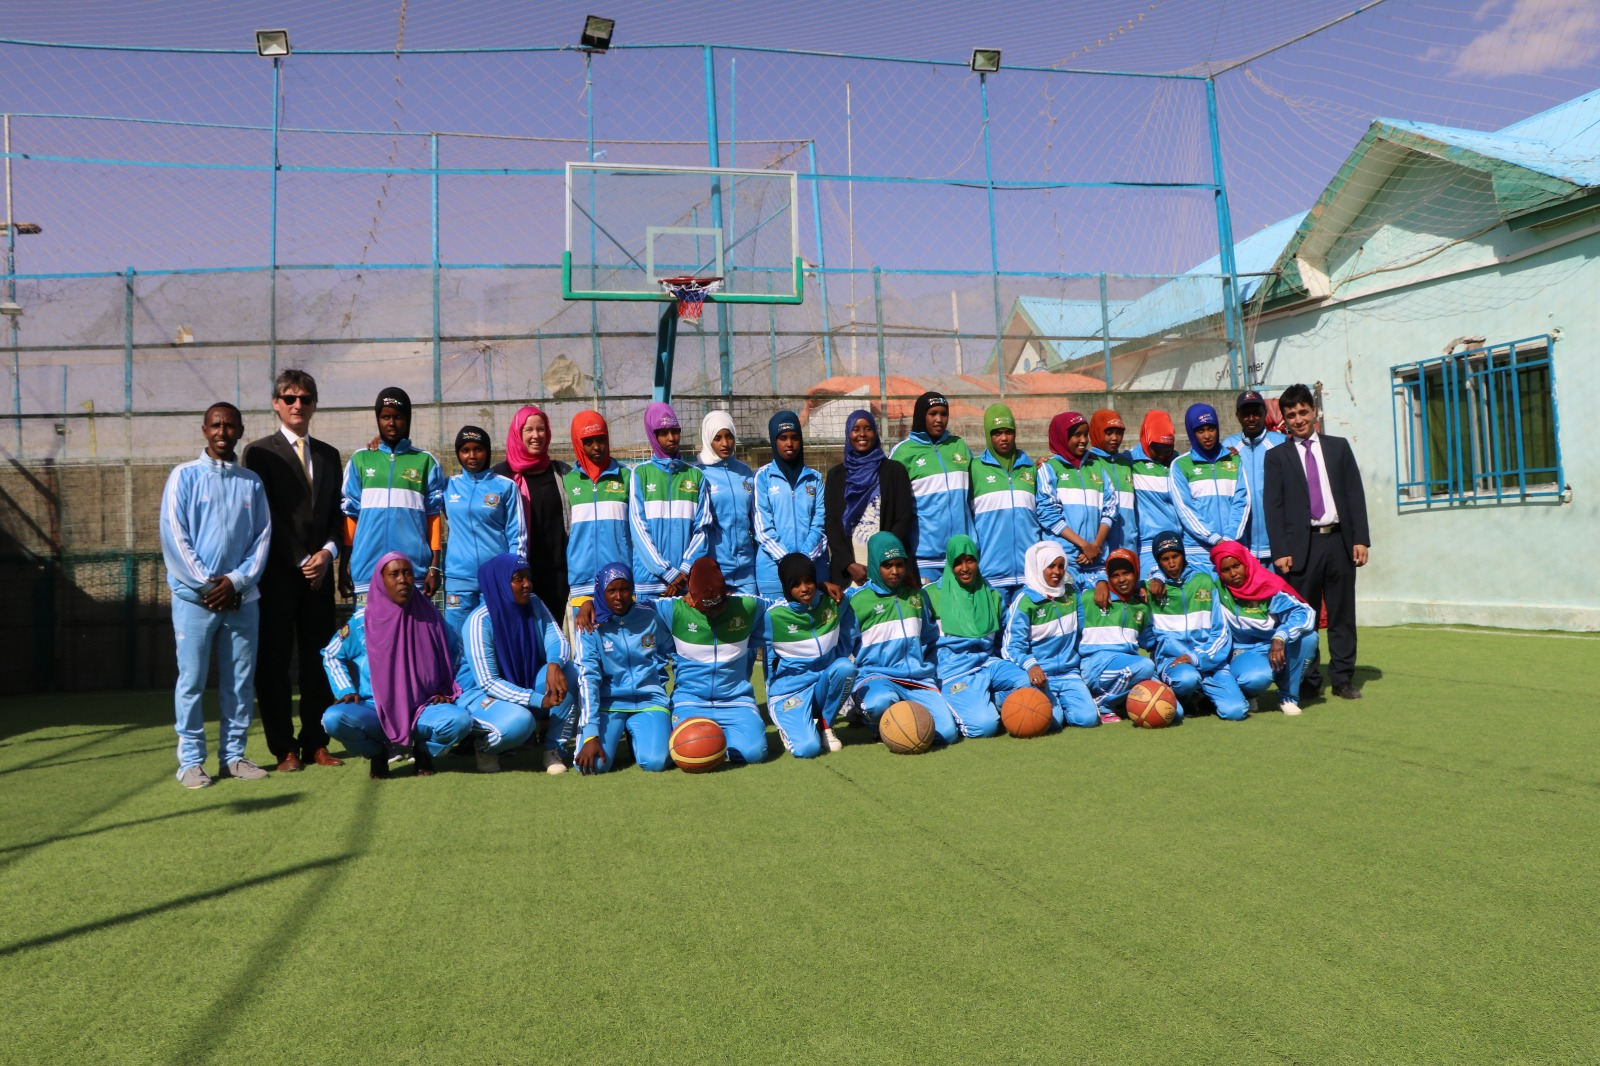 This Girls' Basketball Team Wants to End FGM in Somalia – NowThis HER (image)